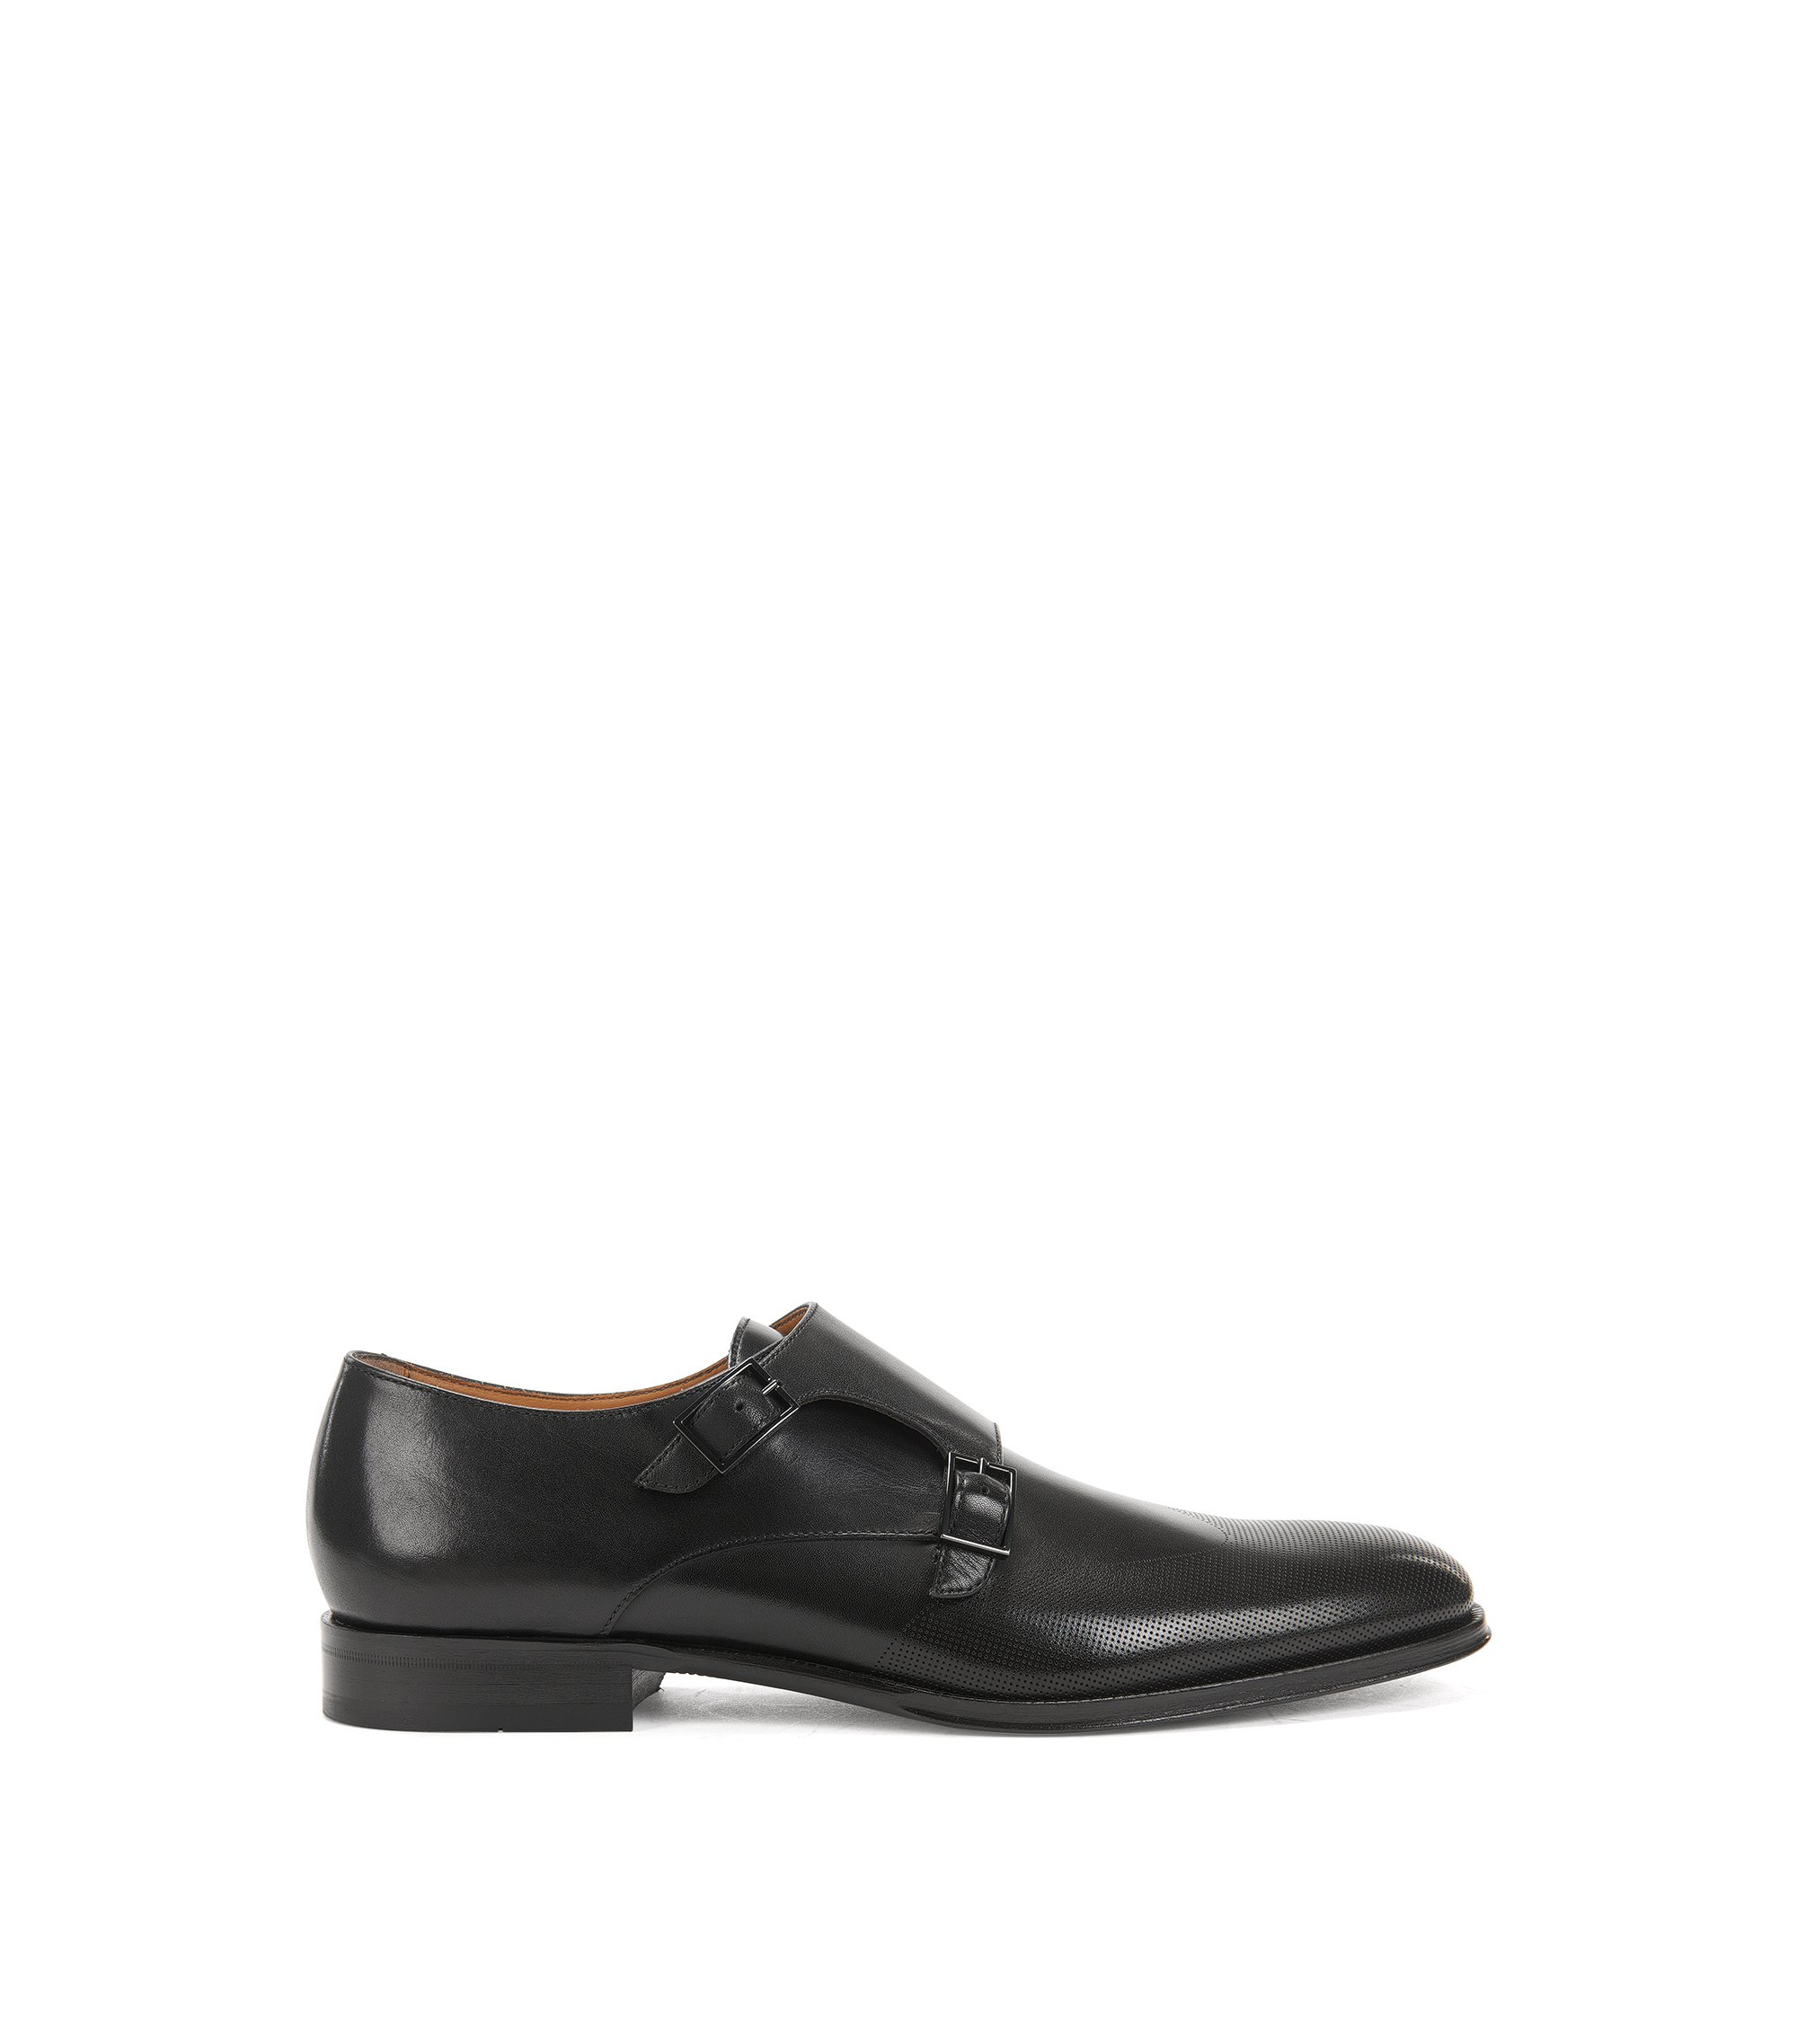 Italian-made calf-leather shoes with double monk strap, Black